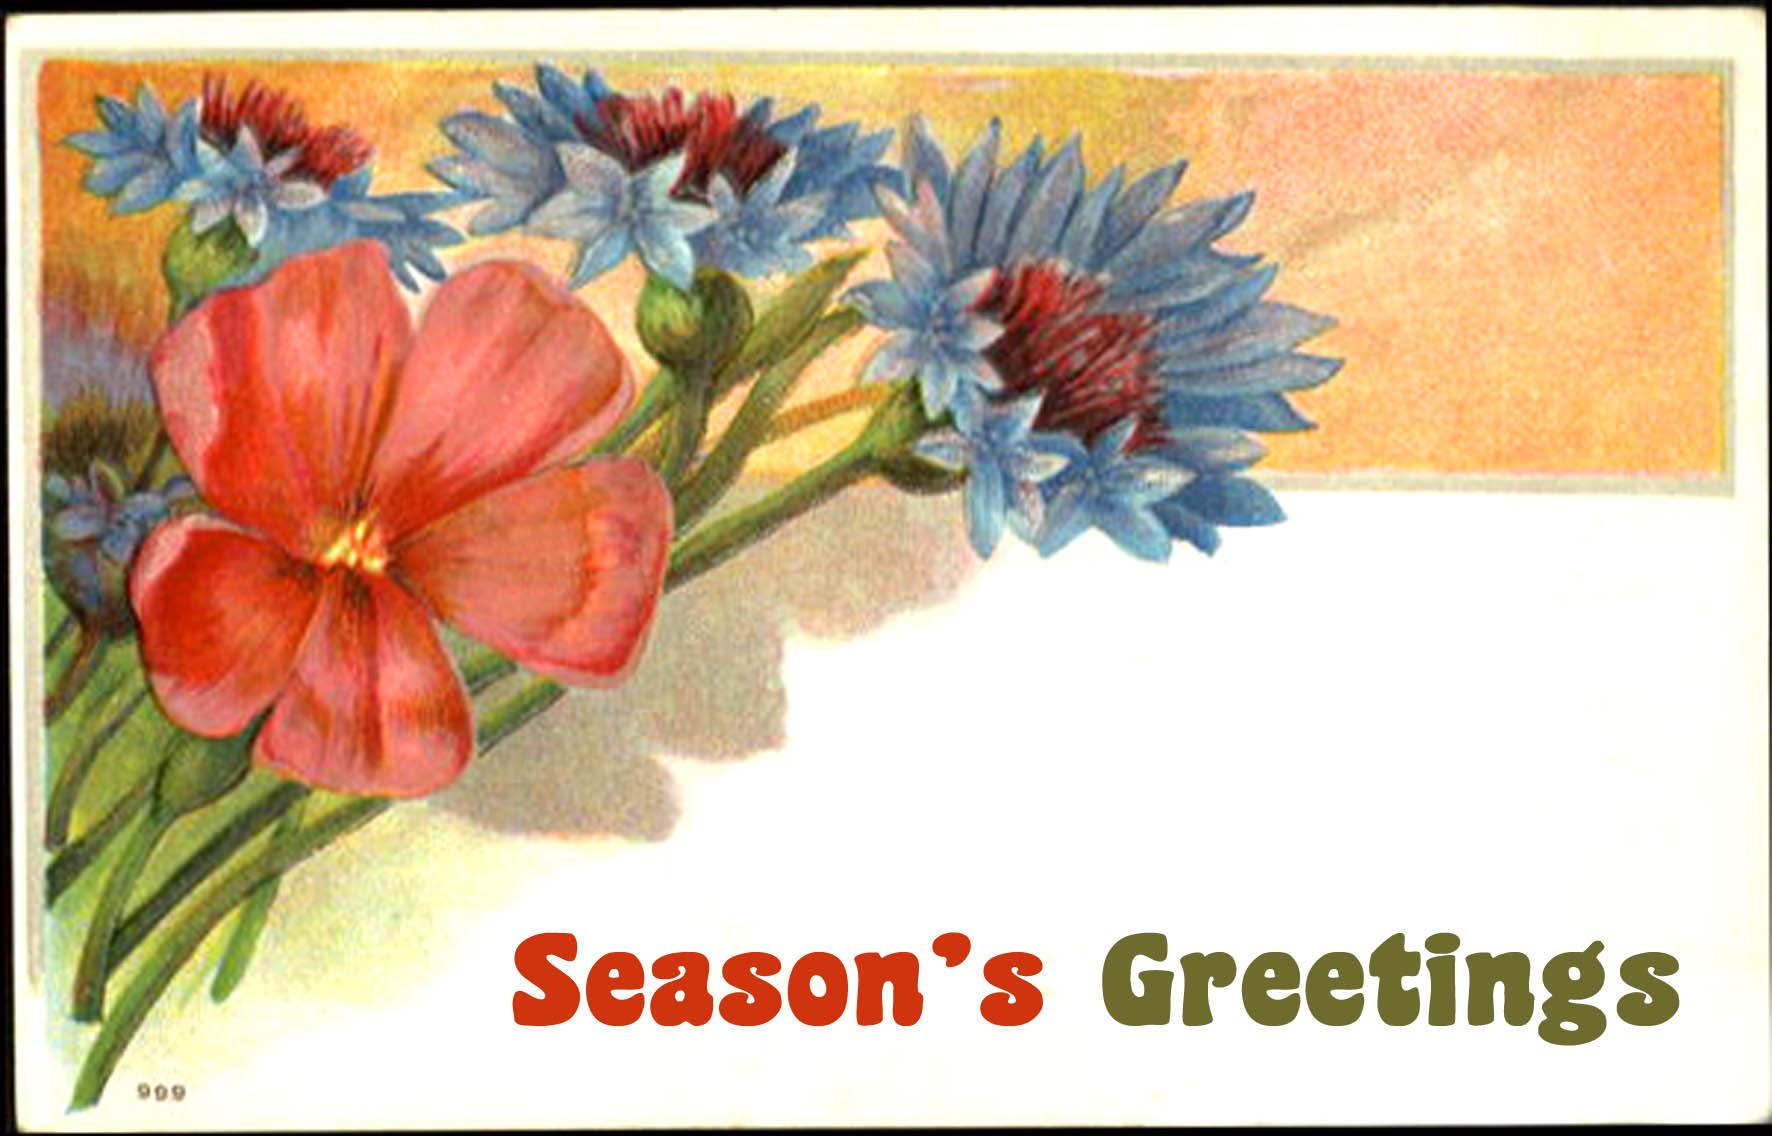 Vintage Christmas greeting card - drawing of flowers - text: Season's Greetings